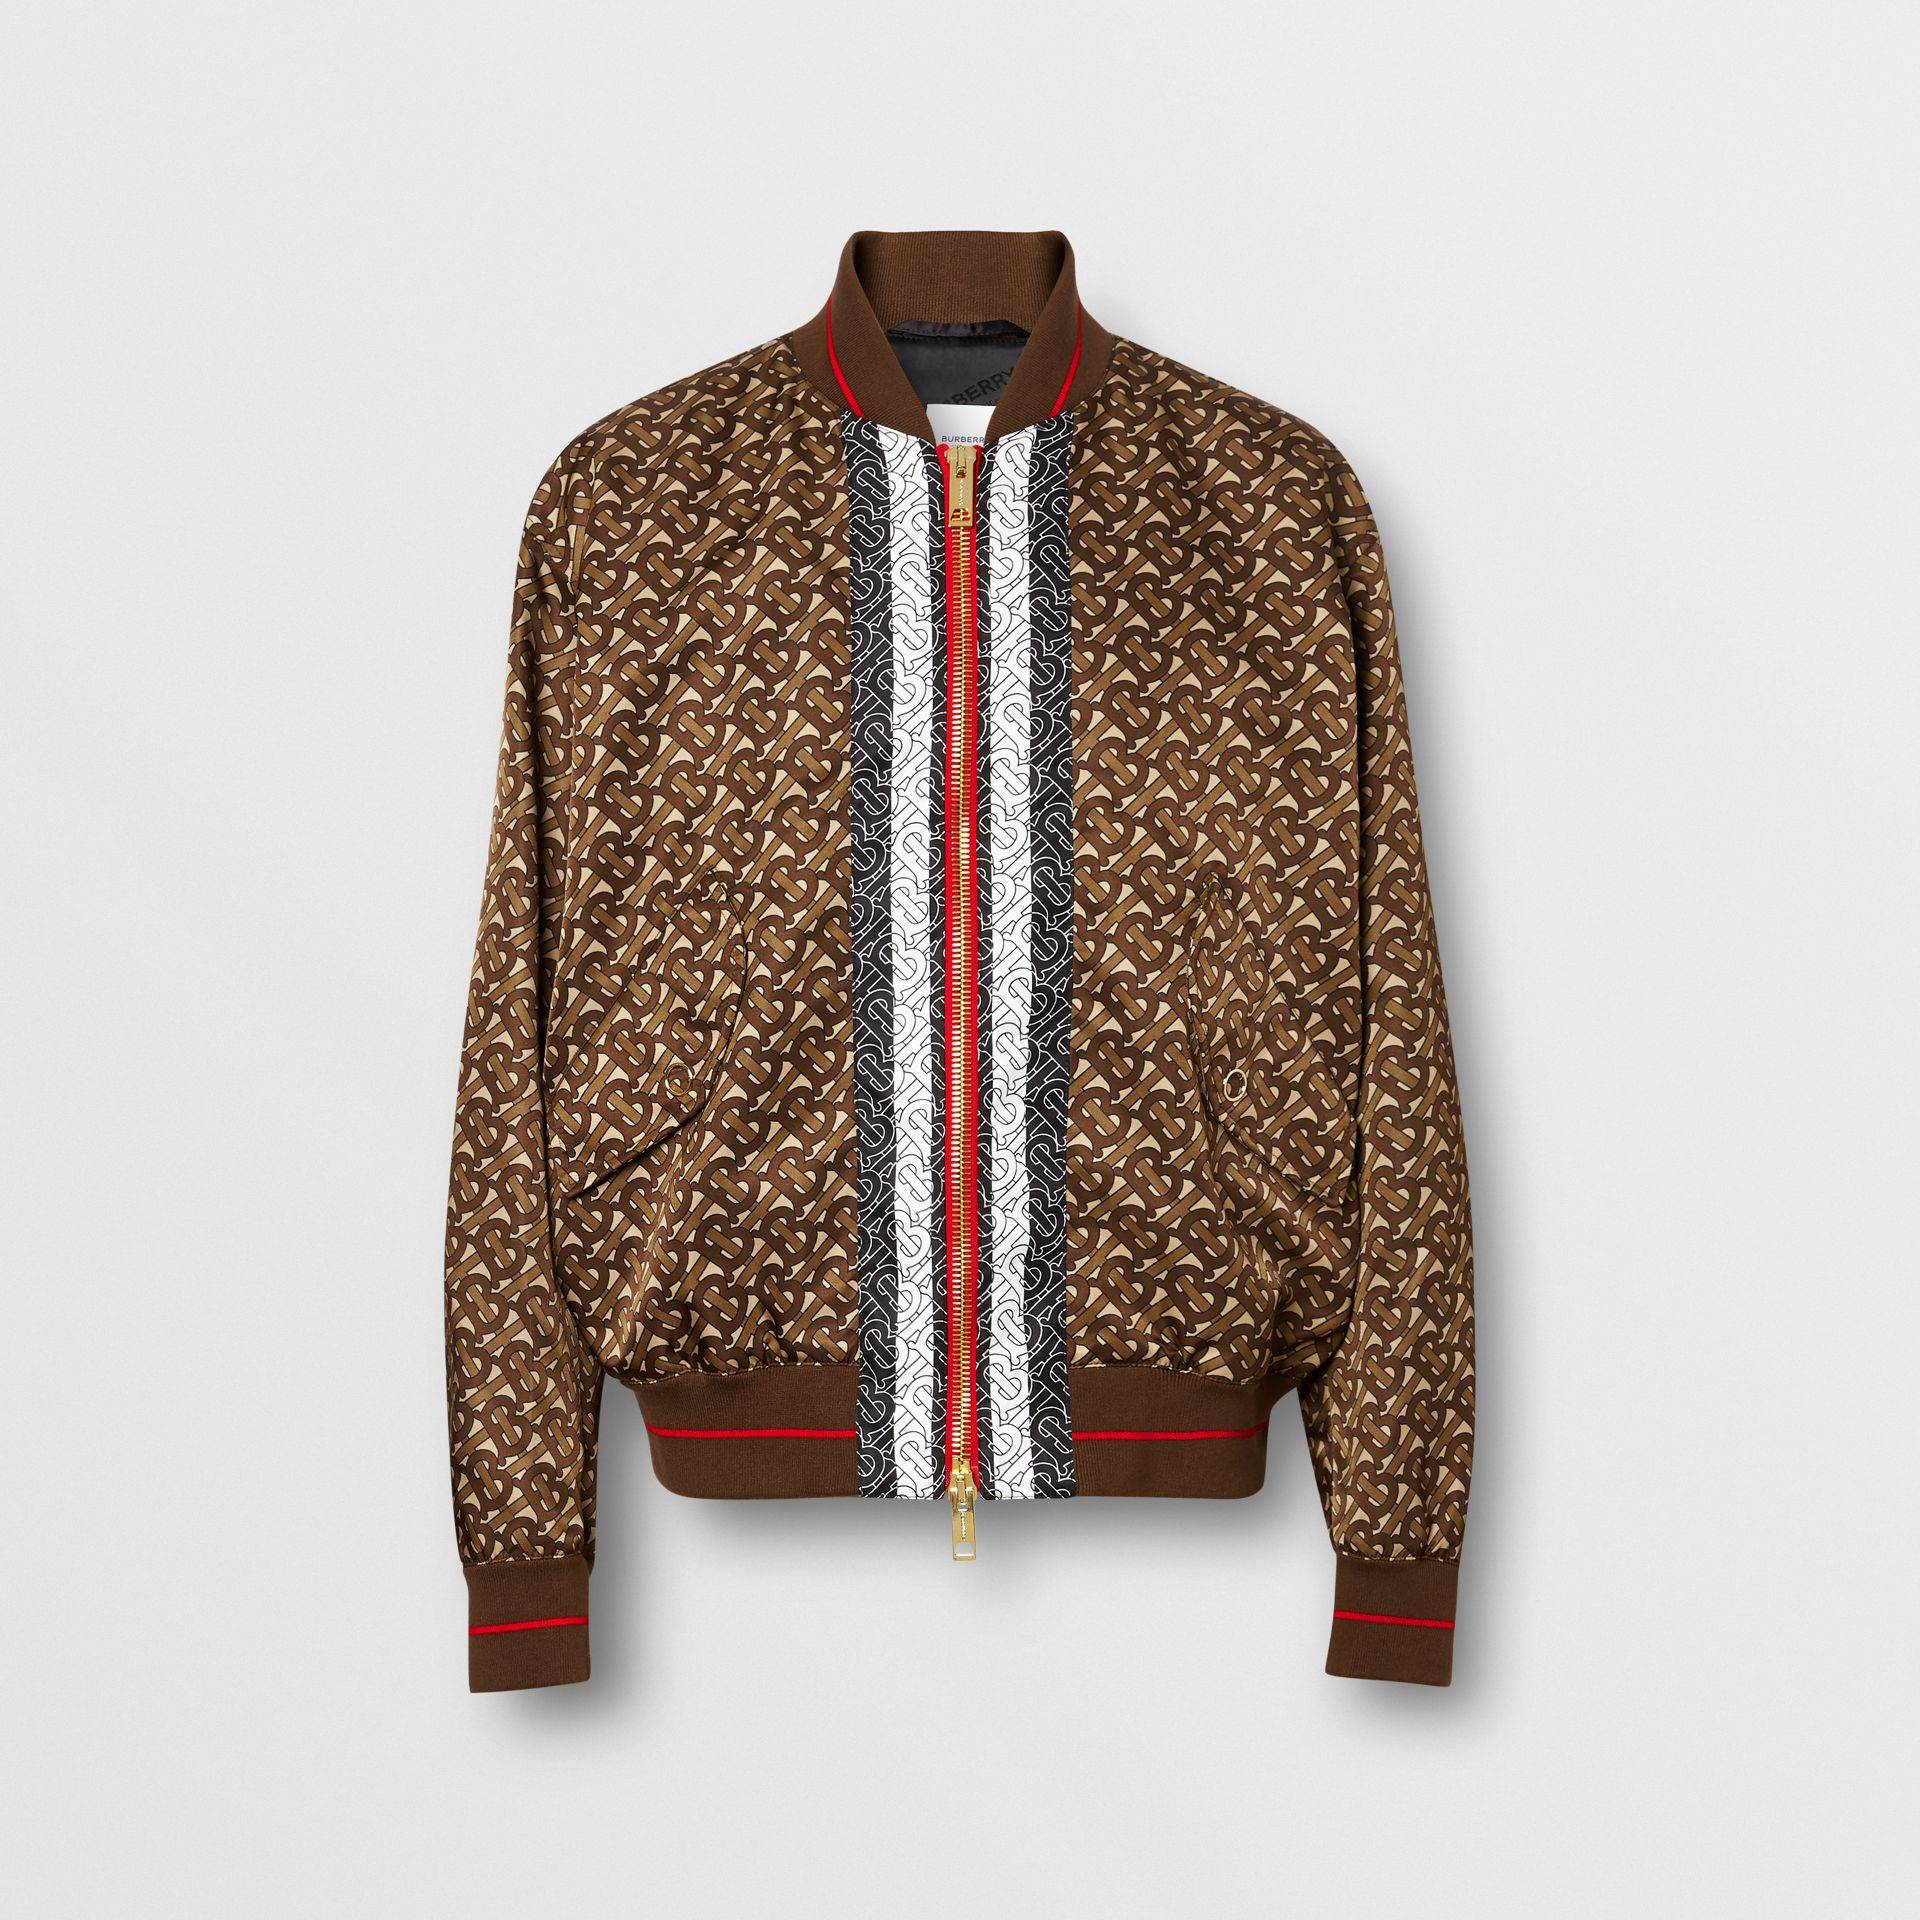 Monogram Stripe Print Nylon Bomber Jacket in Bridle Brown - Men | Burberry - gallery image 3